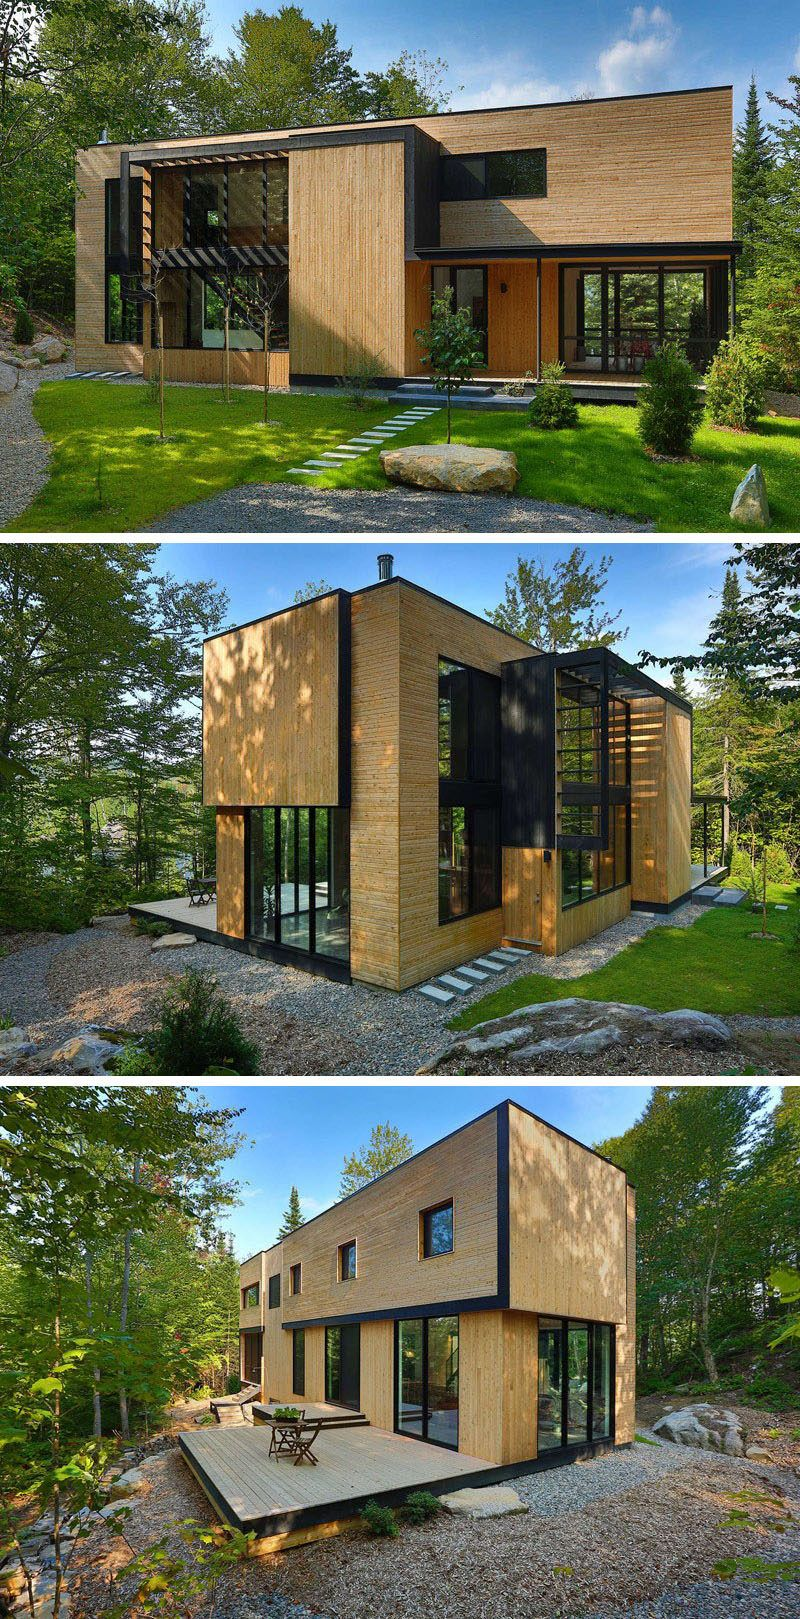 18 modern house in the forest light colored wood covers the exterior of this